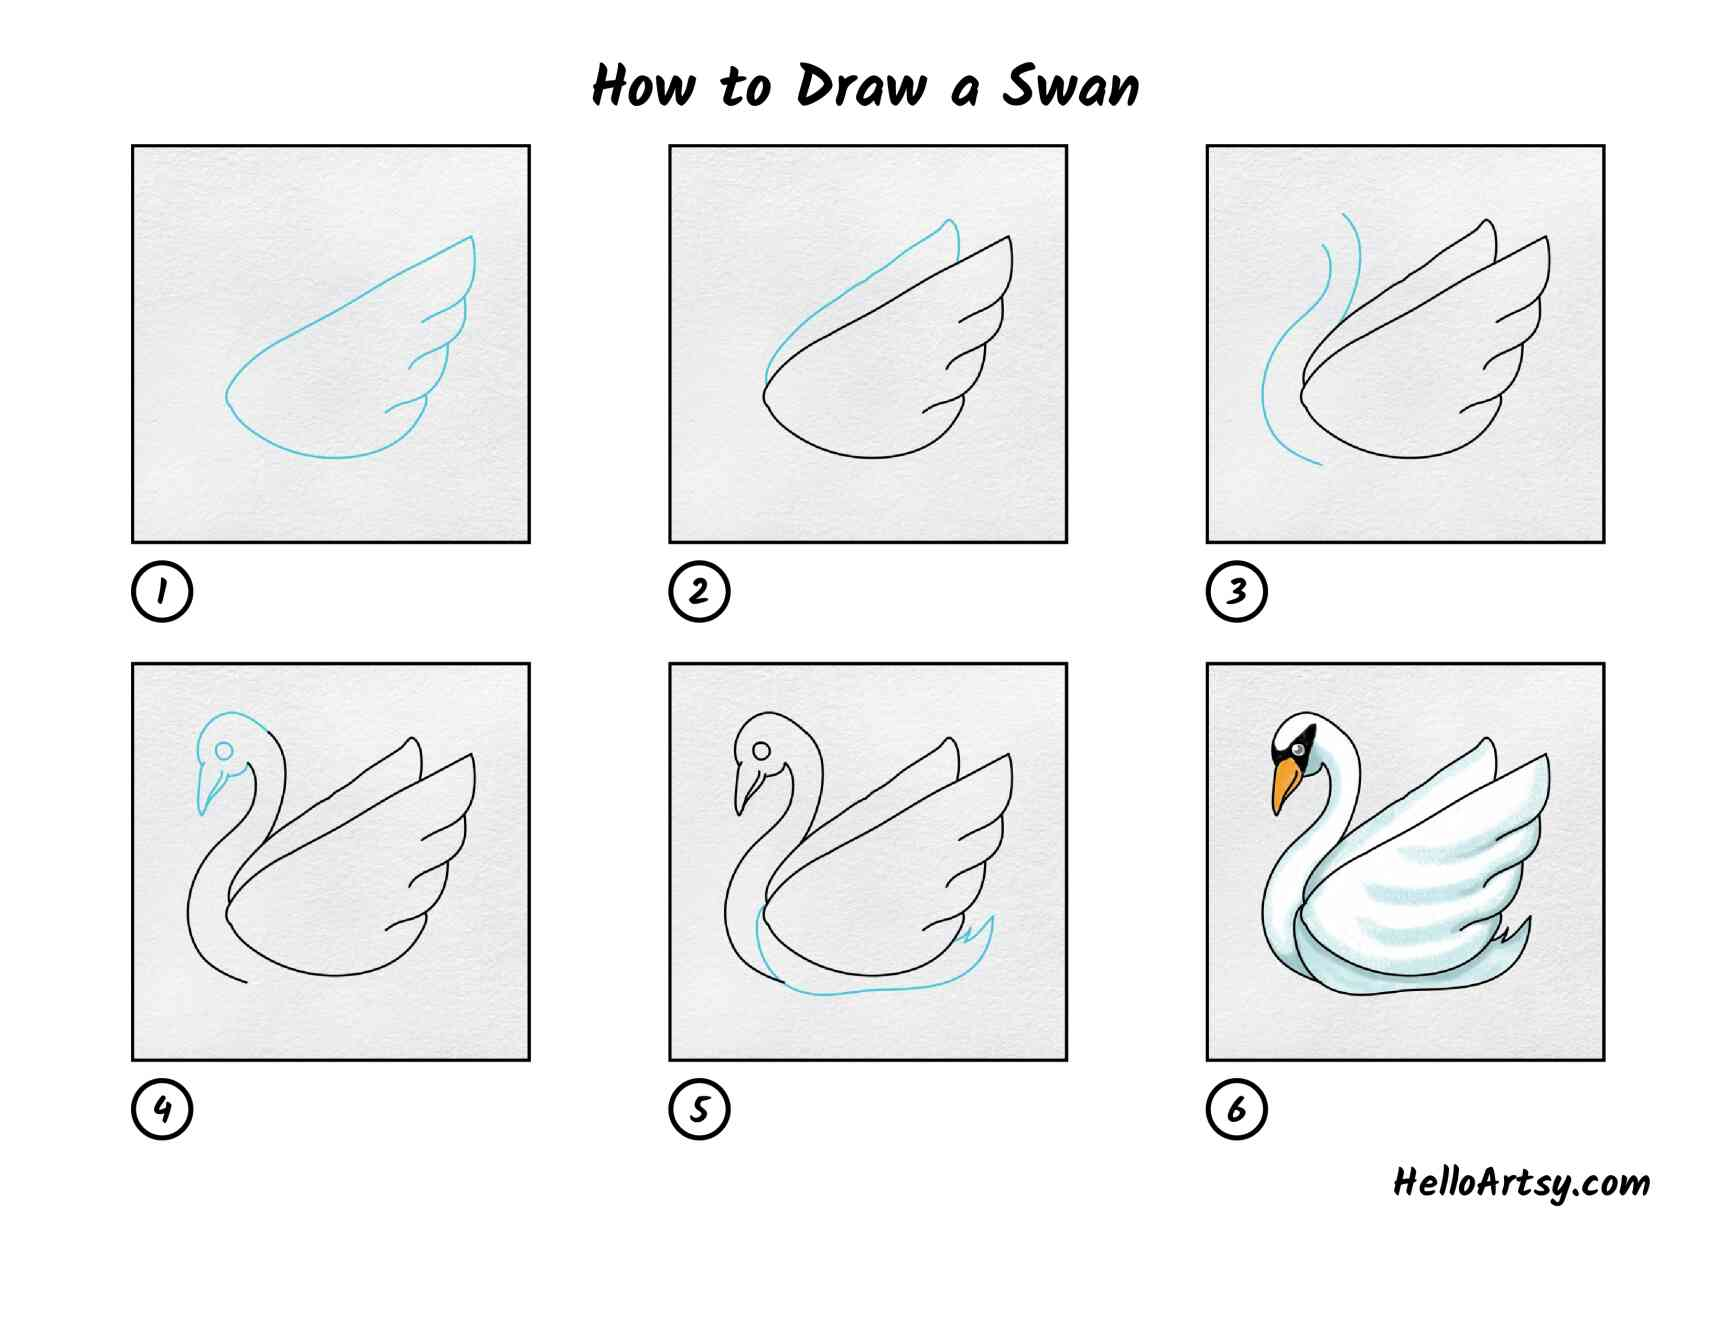 How To Draw A Swan: All Steps